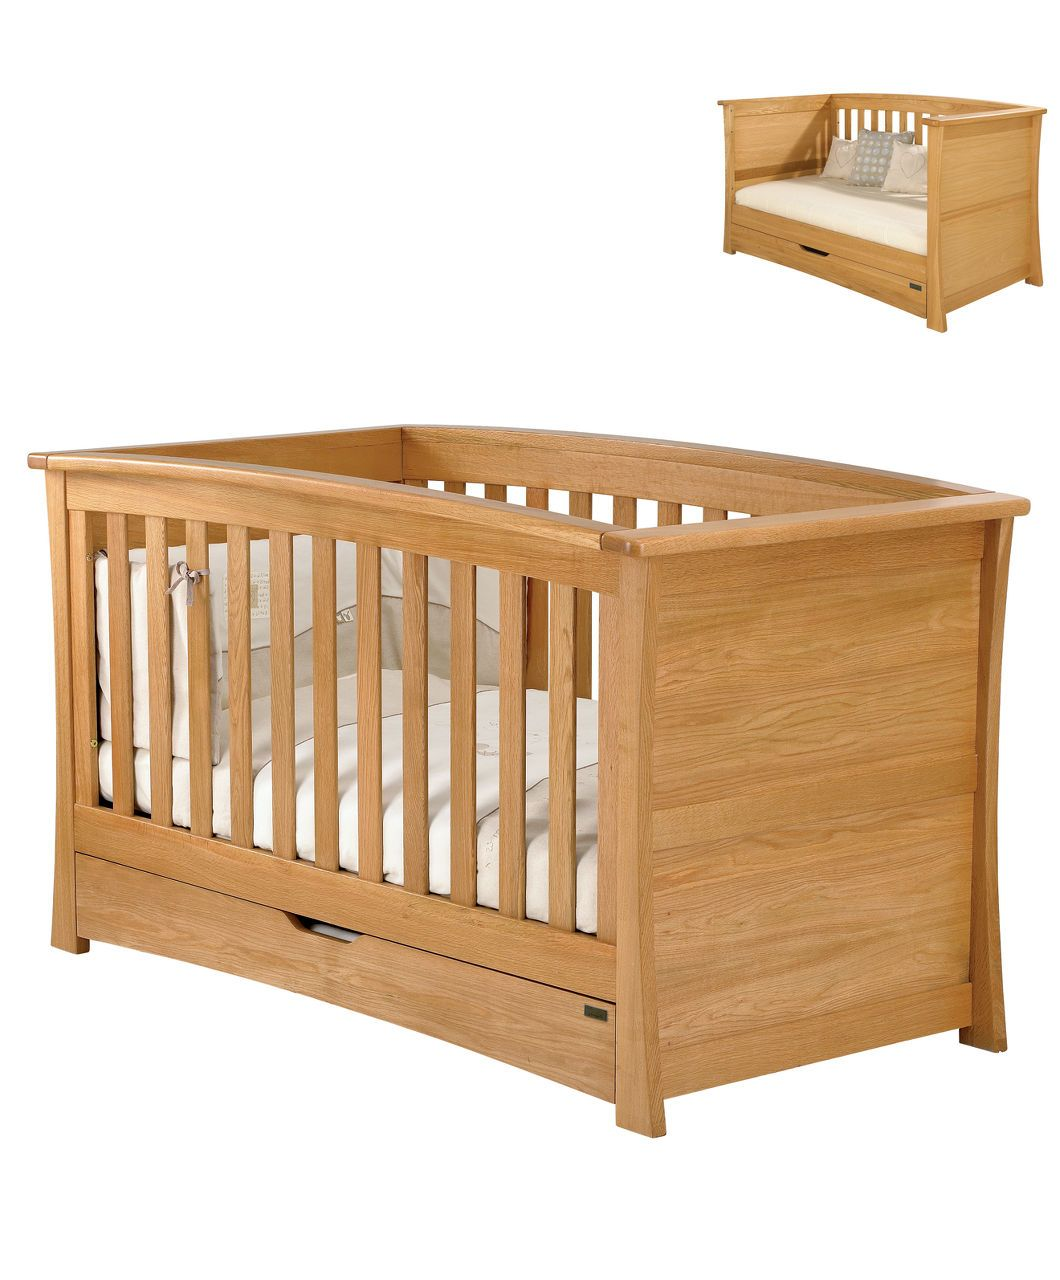 Mamas And Papas Bedroom Furniture Ocean Cot Day Bed Spring Oak Cot Beds Cots Cribs Mamas